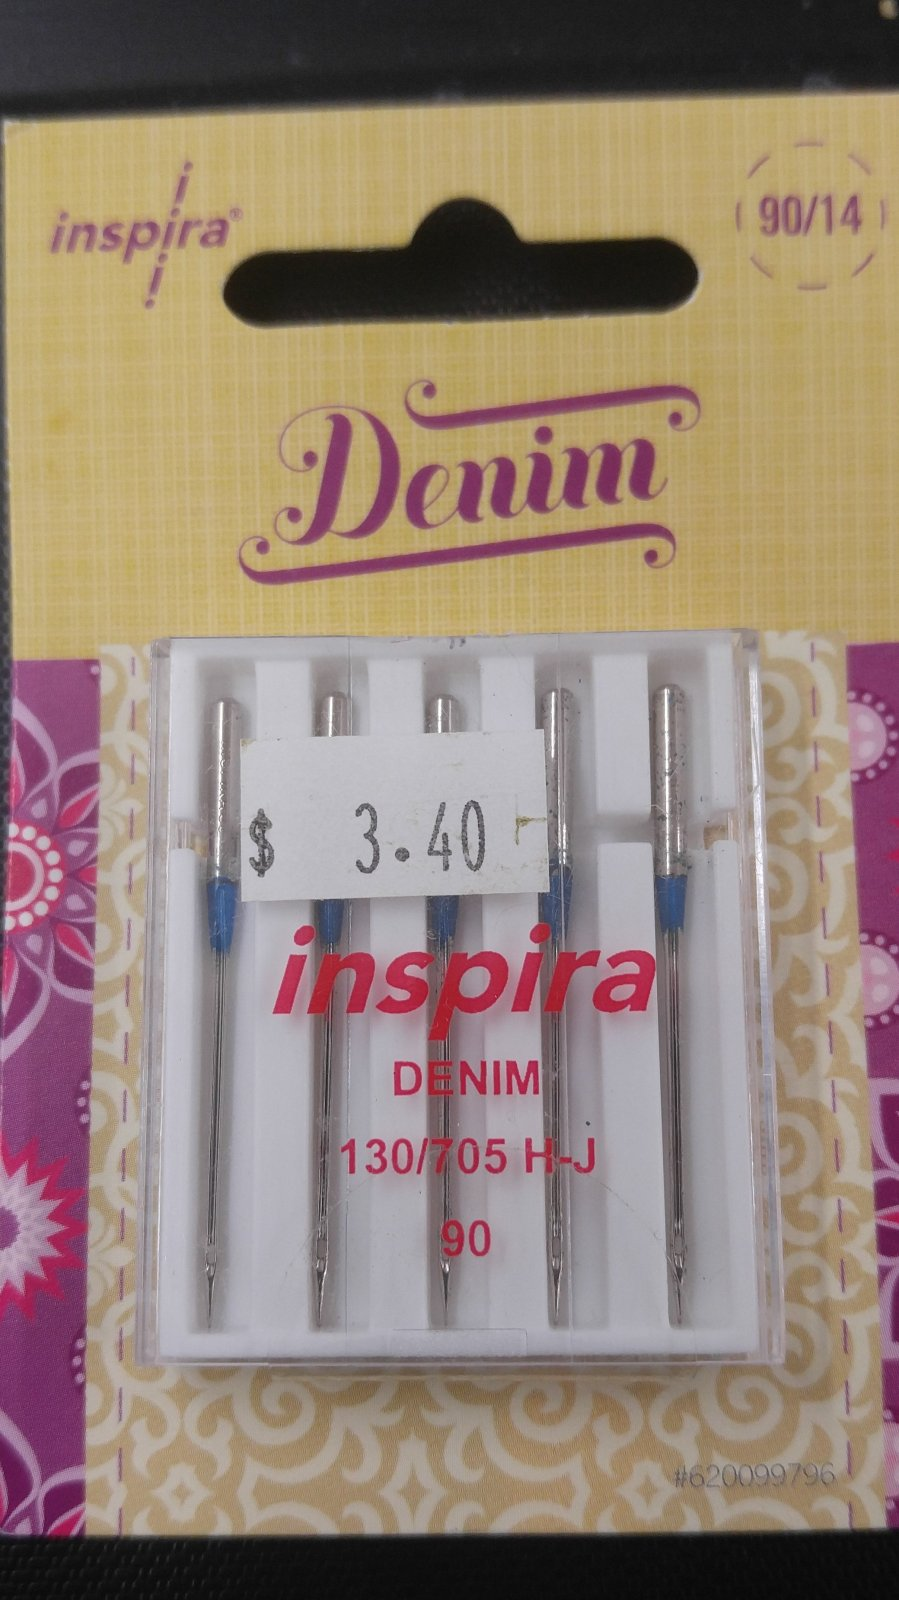 Inspira Denim 90/14 Needles (5Pack)